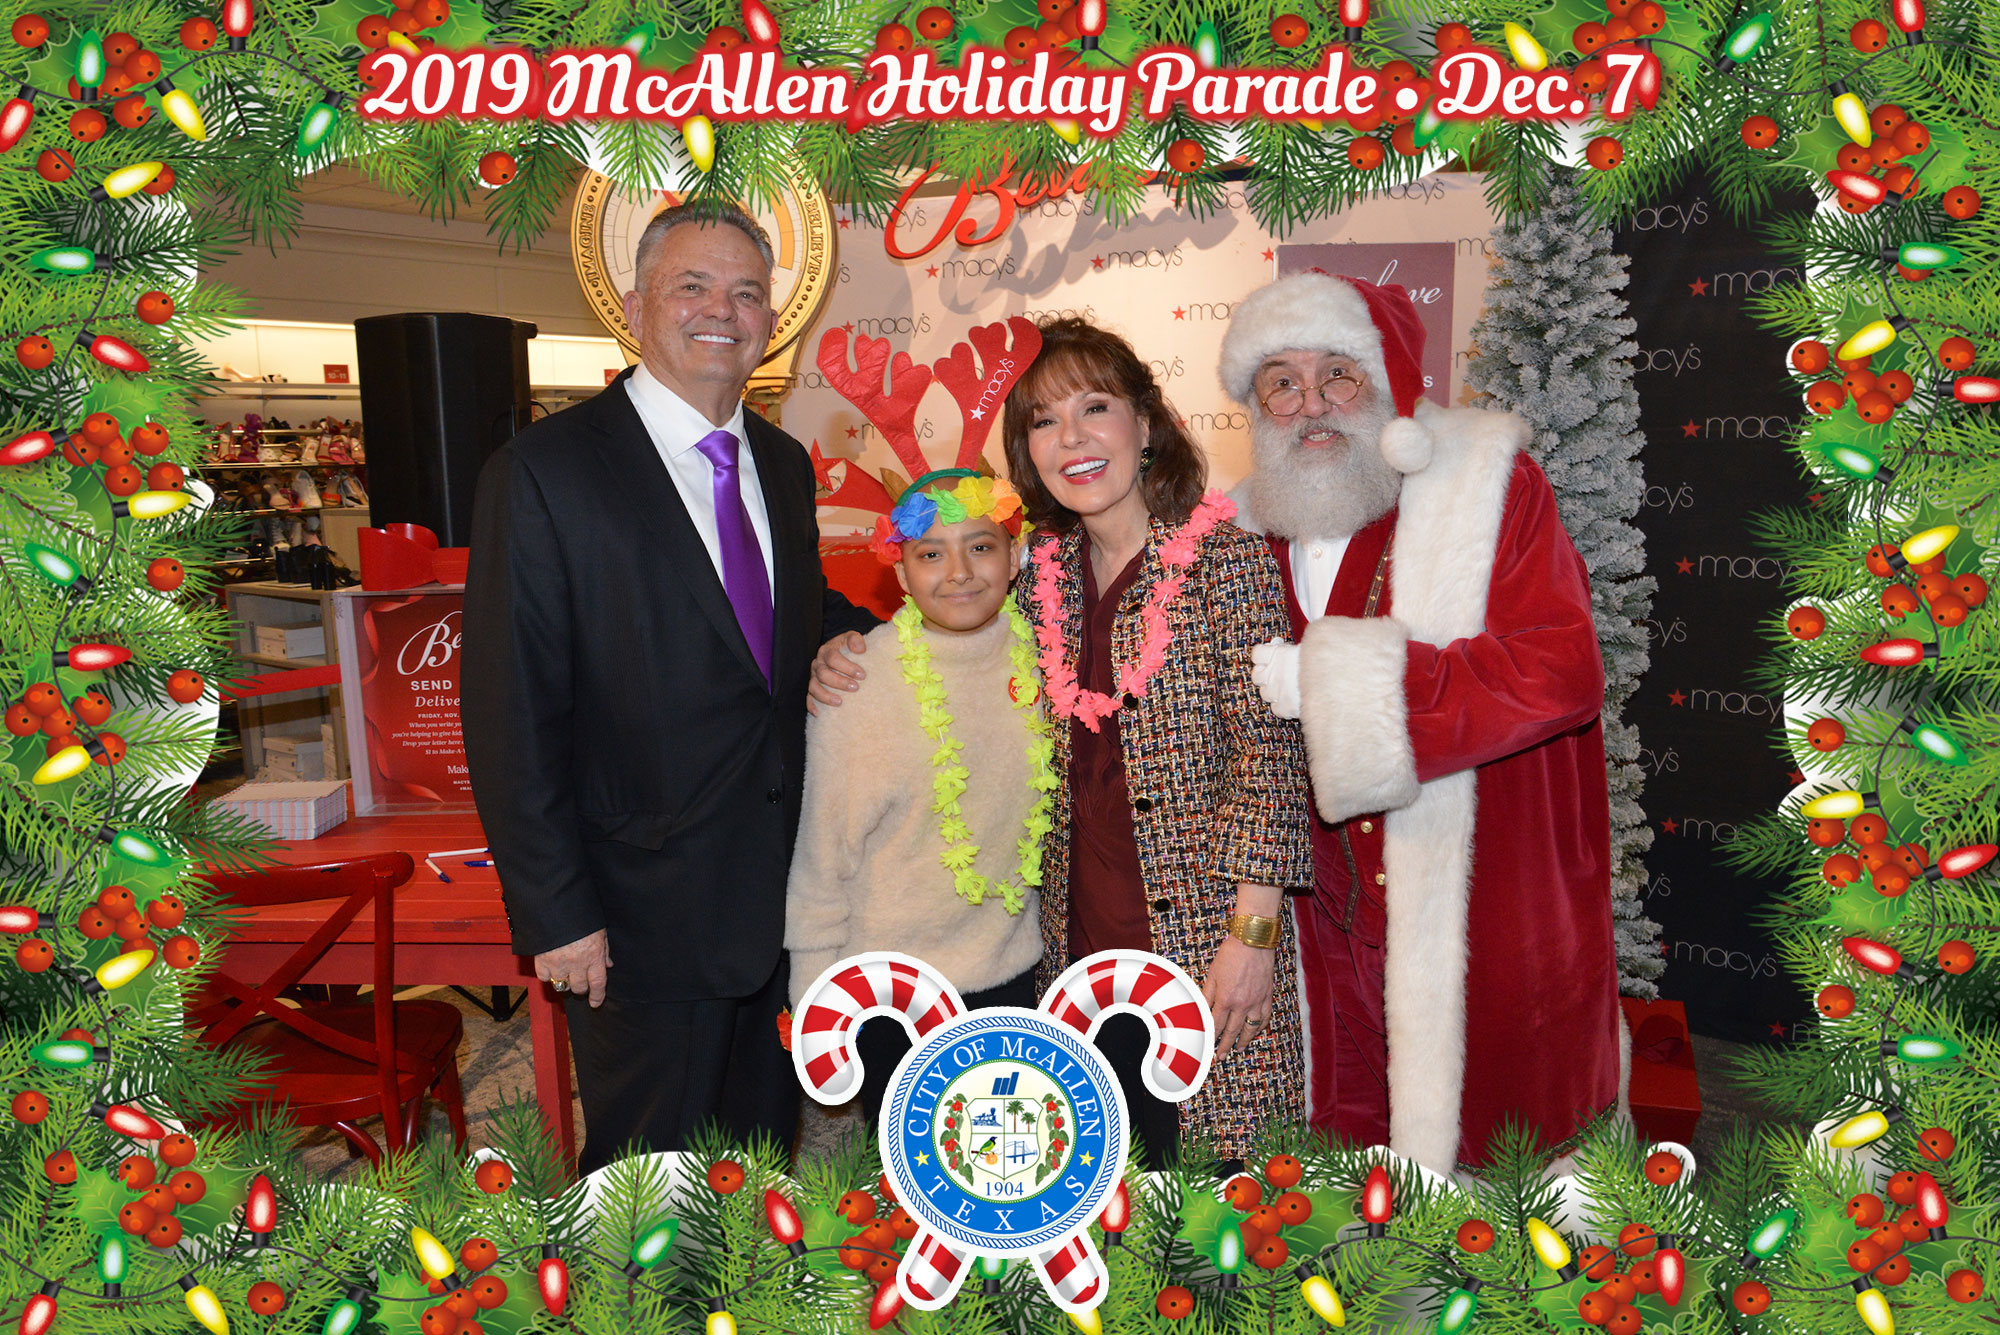 Macy's McAllen Holiday Parade – December 4, 2019